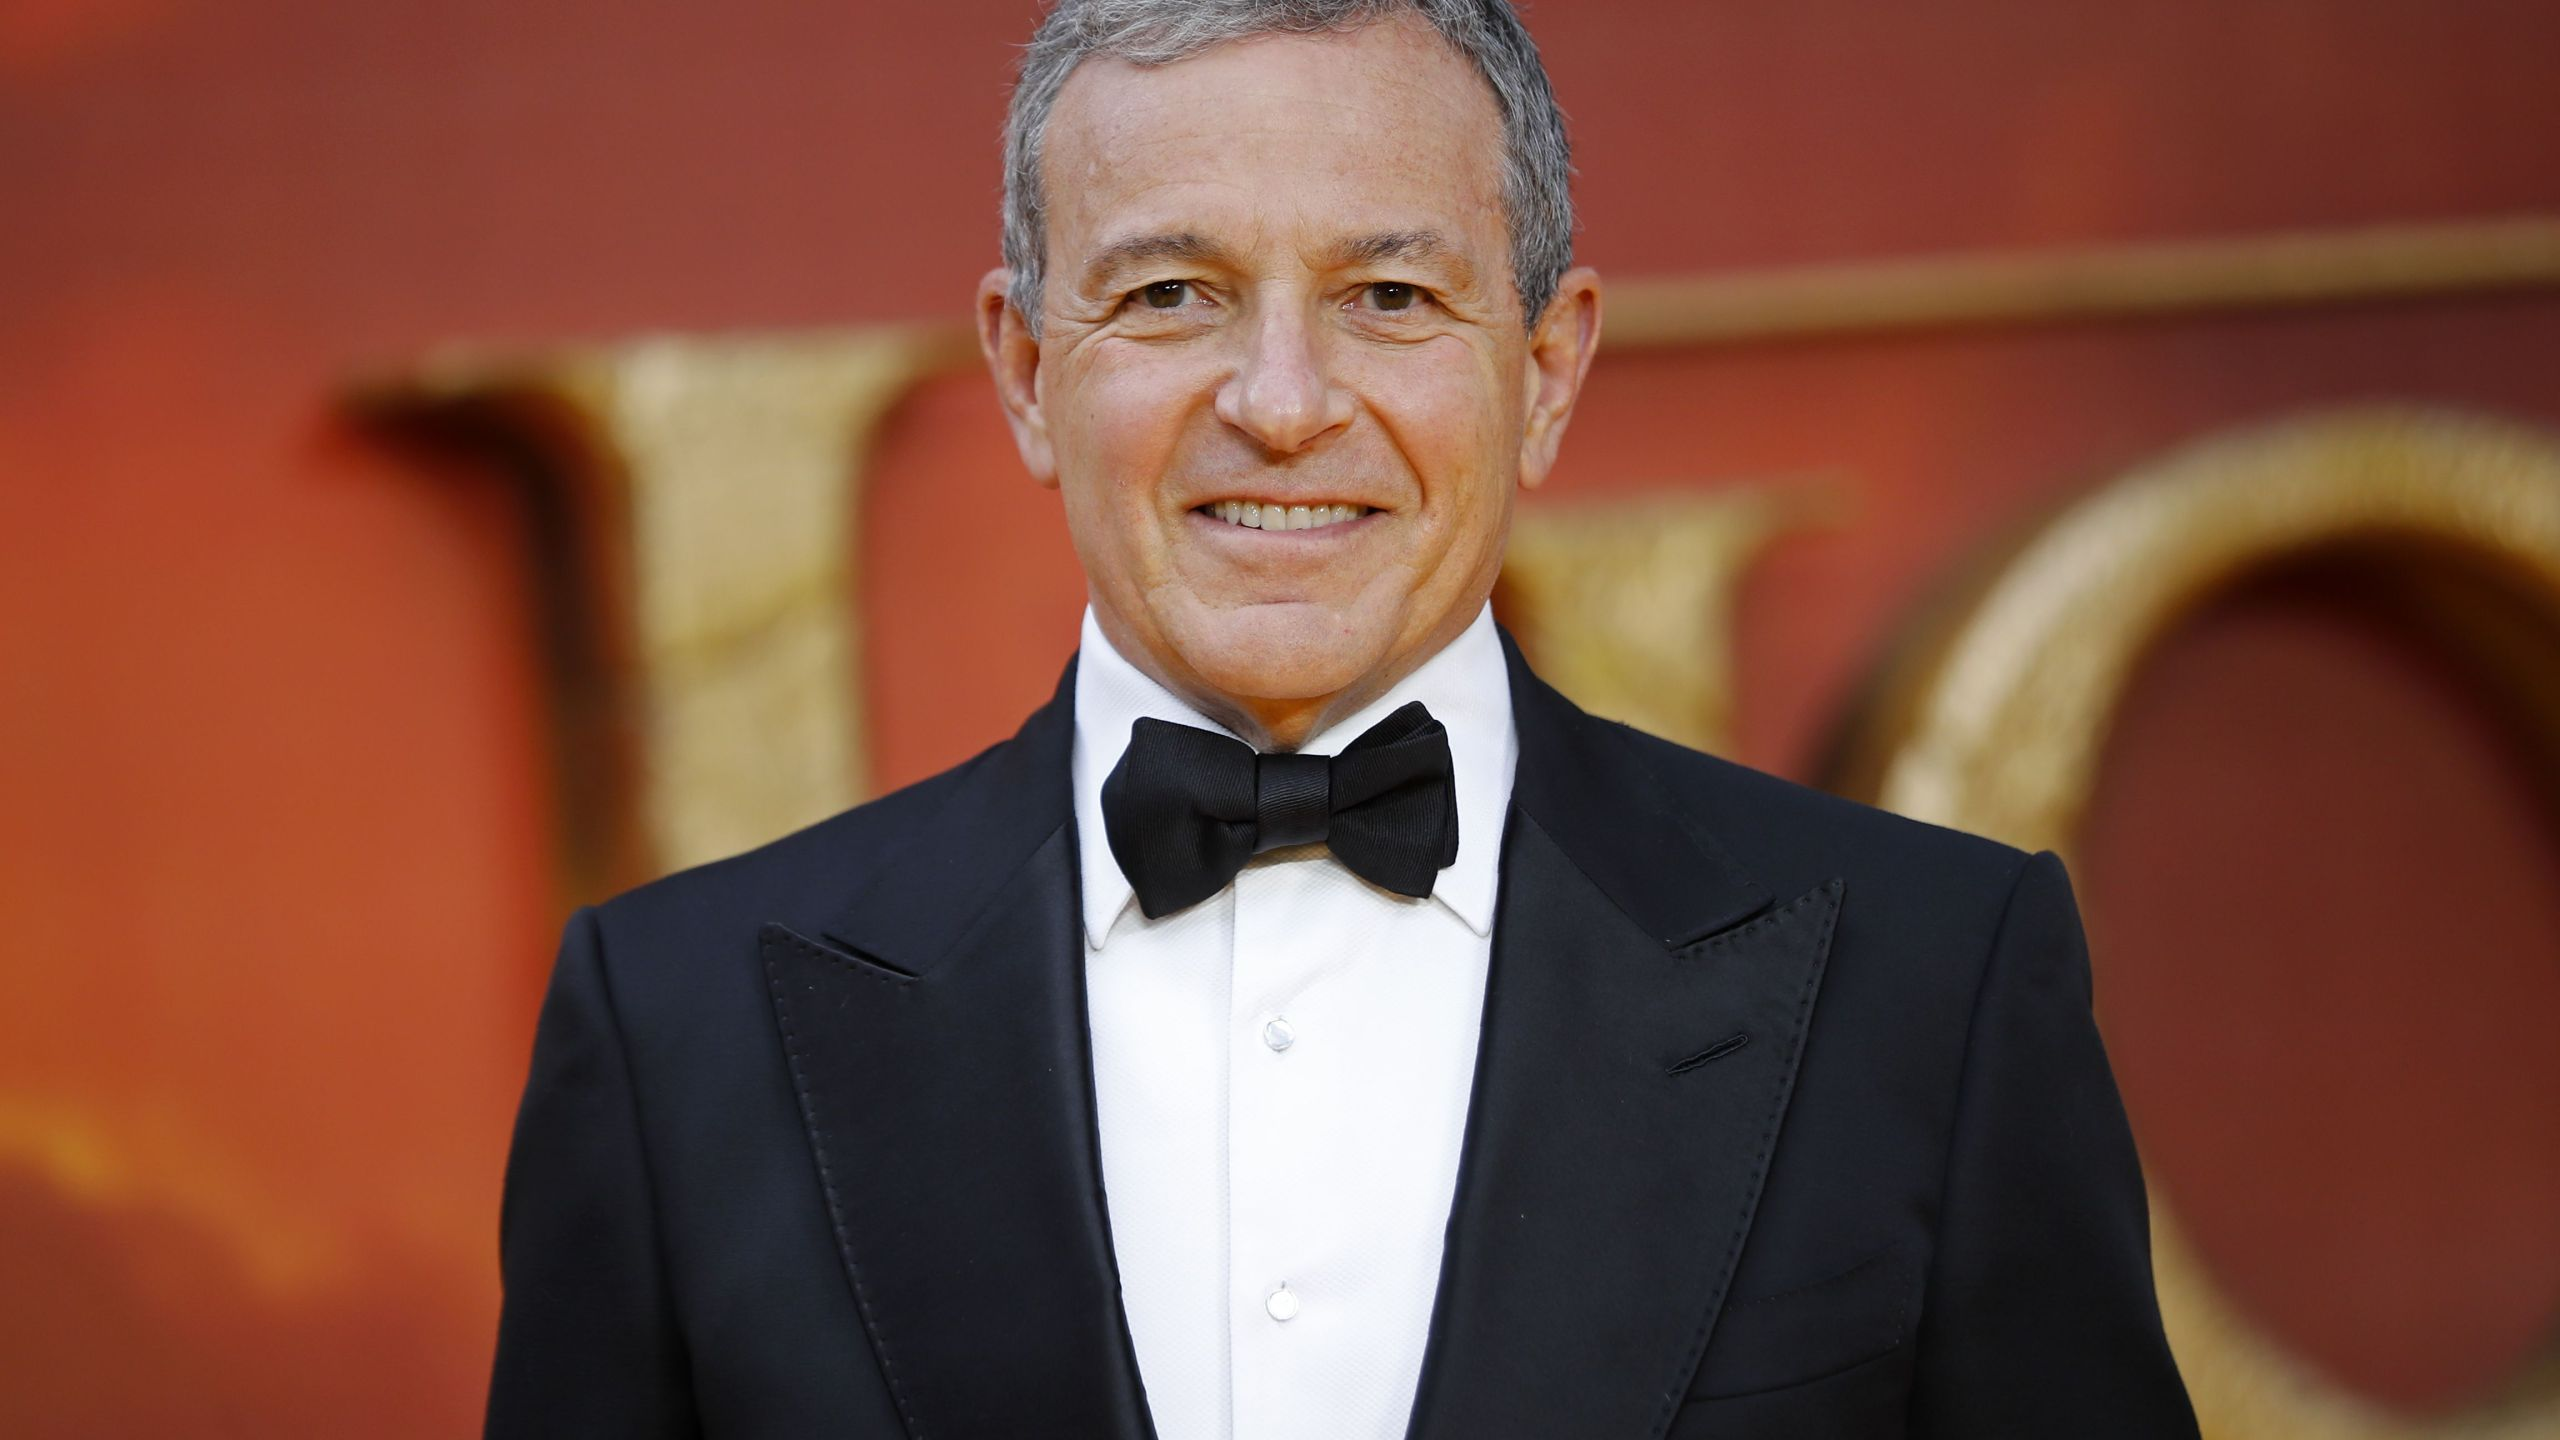 Disney CEO Robert Iger poses on the red carpet upon arriving for the European premiere of the film The Lion King in London on July 14, 2019. (Credit: TOLGA AKMEN/AFP/Getty Images)